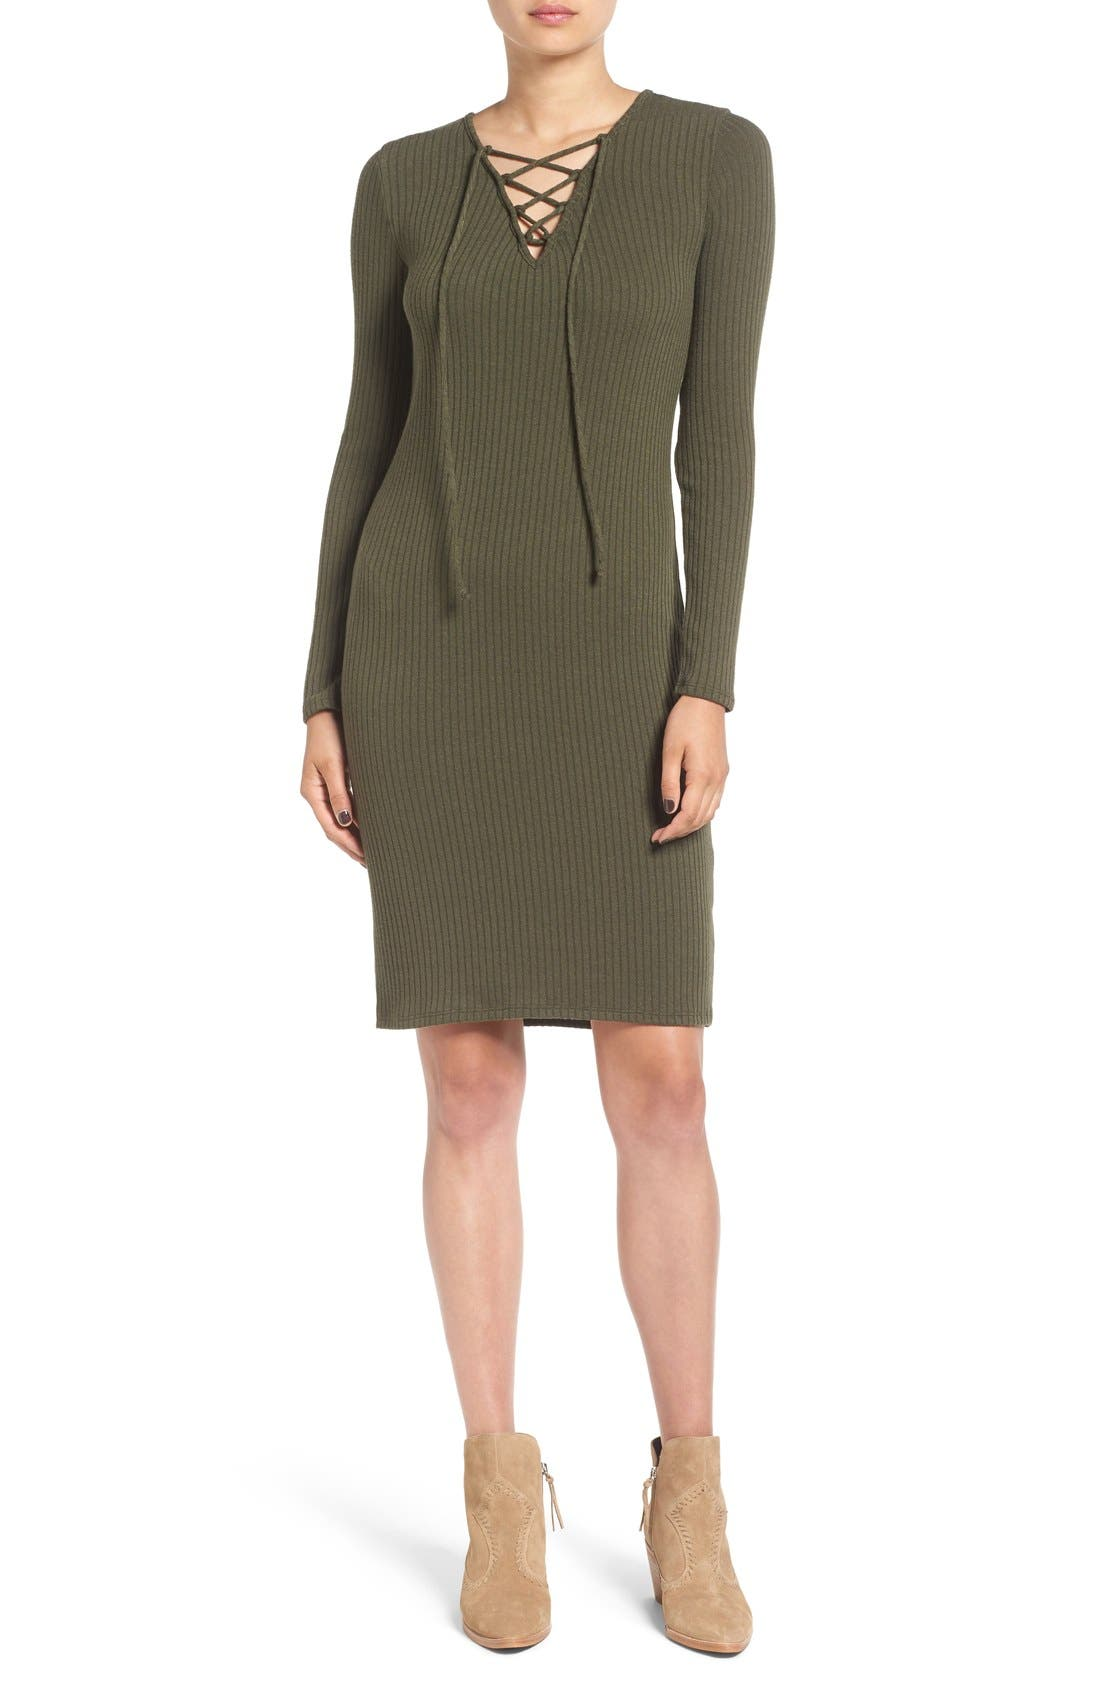 Alternate Image 1 Selected - One Clothing Lace-Up Neck Ribbed Body-Con Dress